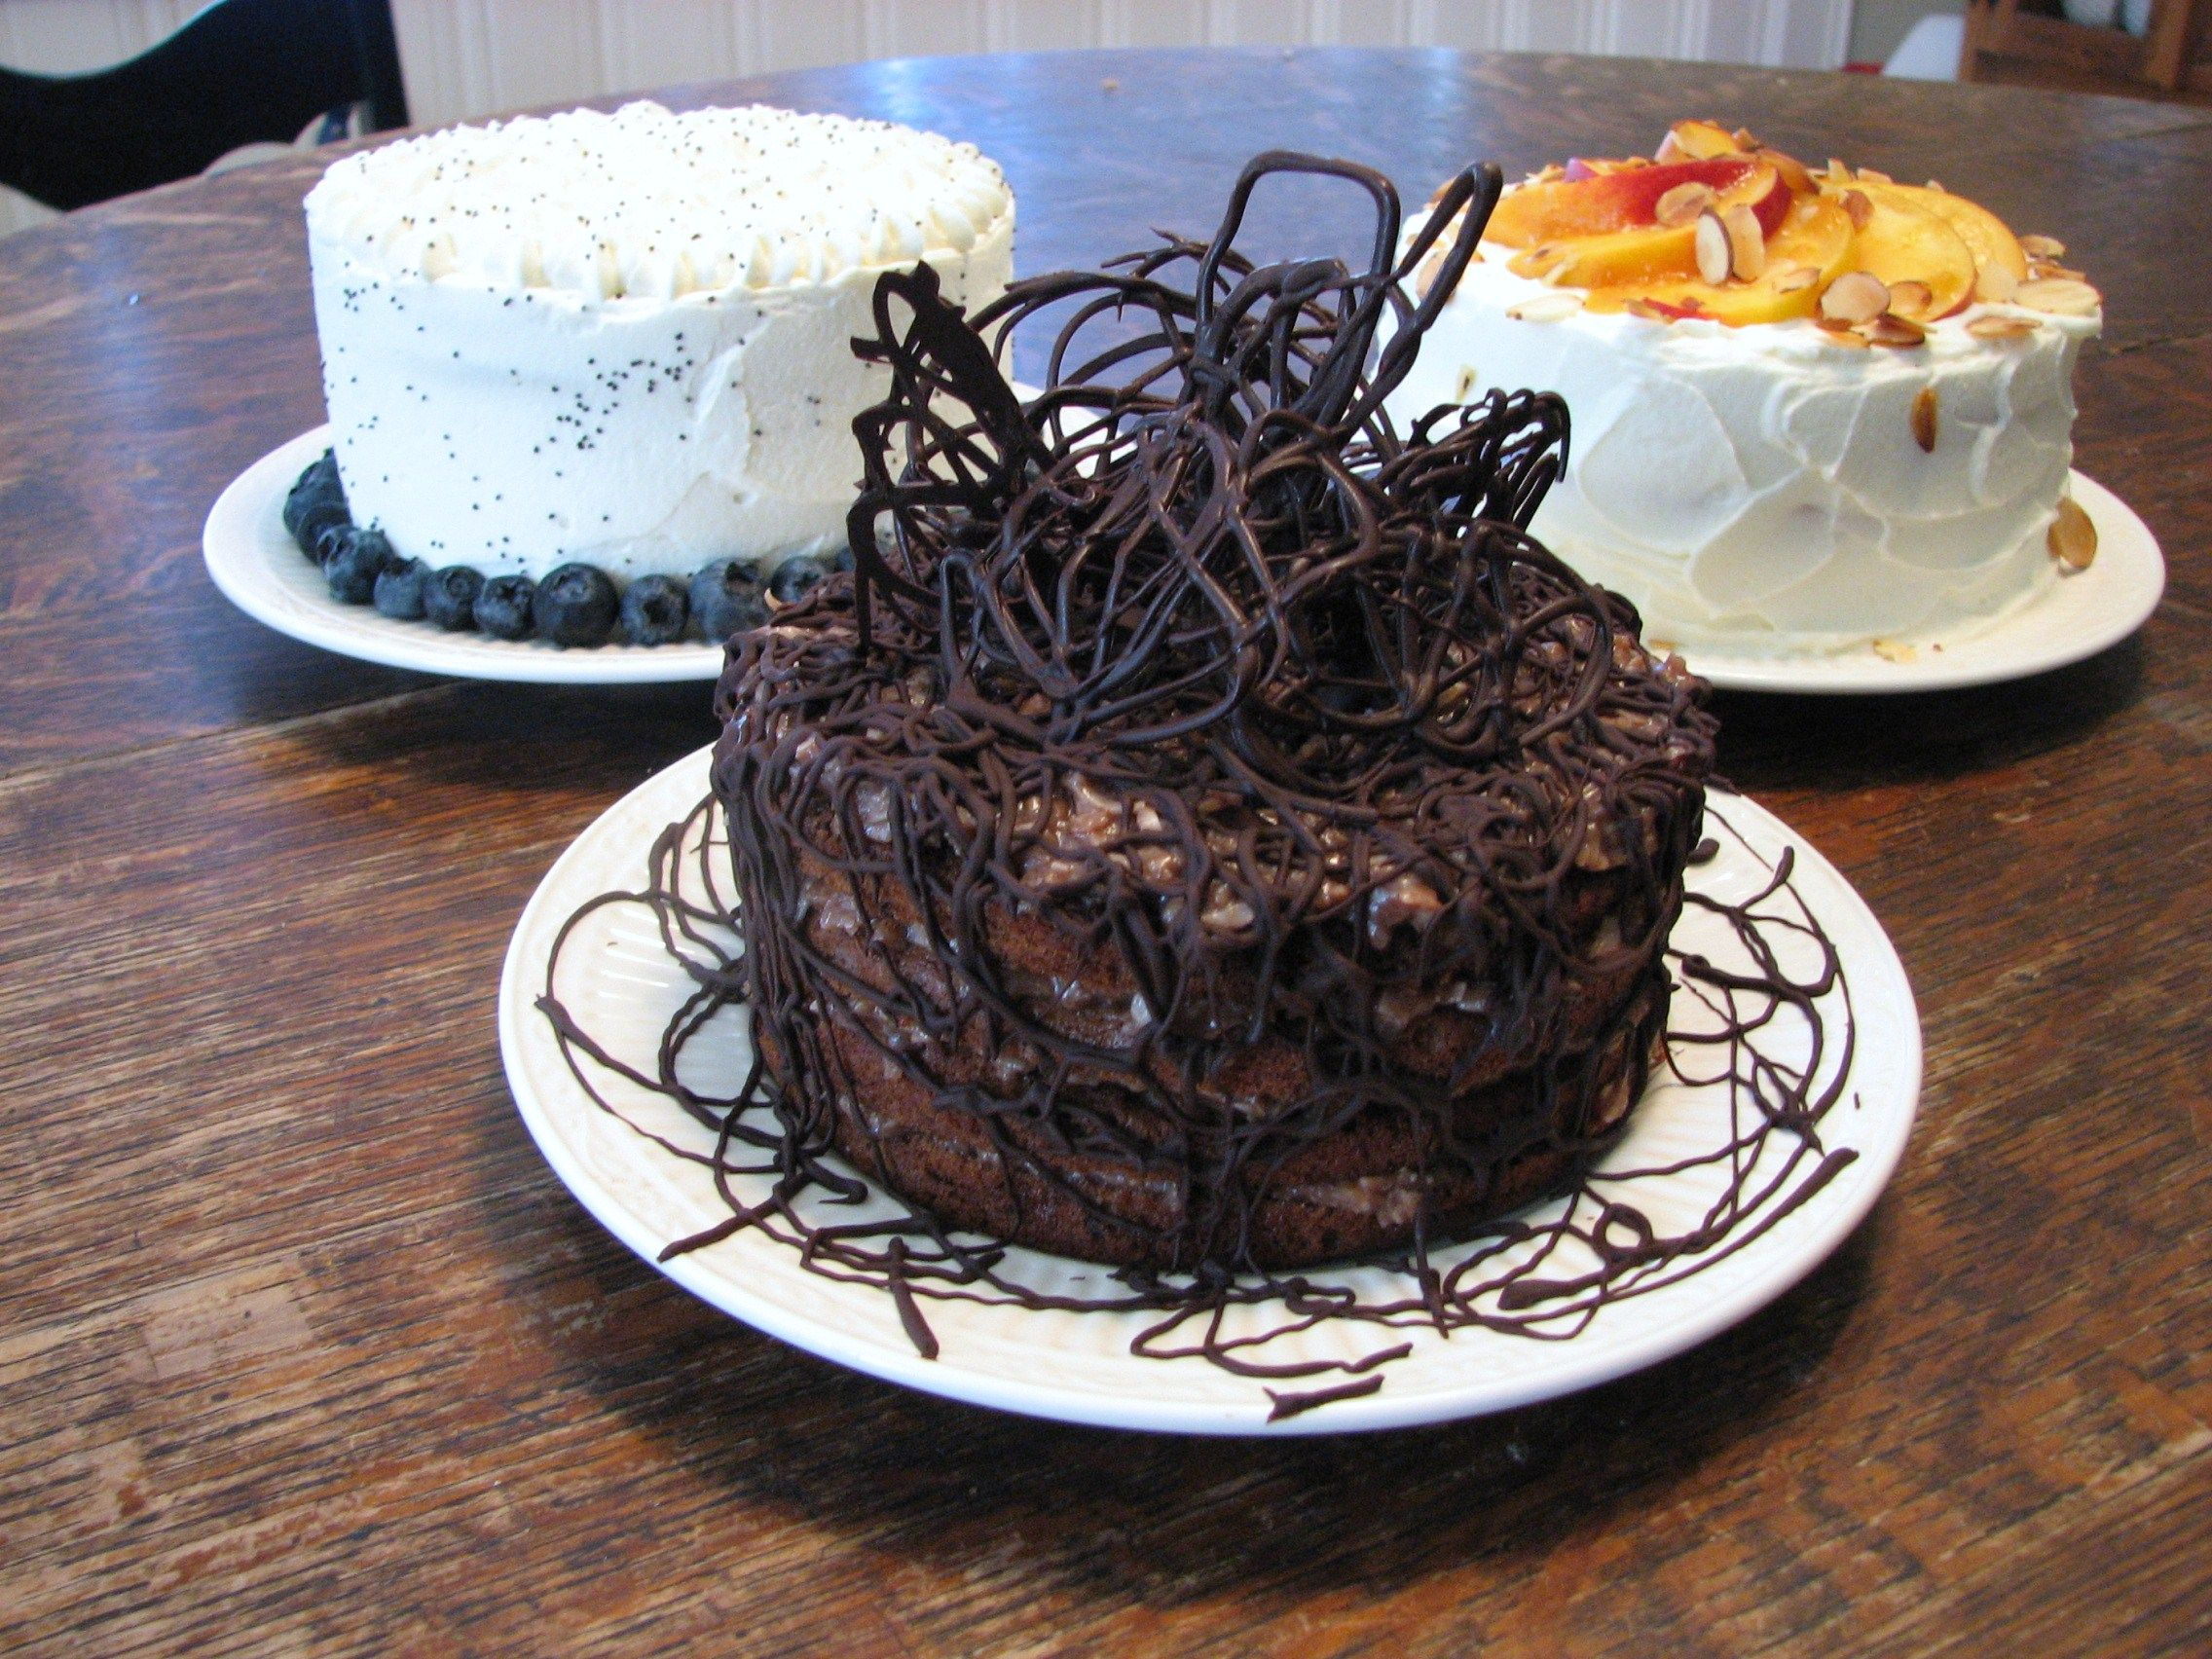 3 mini birthday cakes German Chocolate with chocolate drizzle